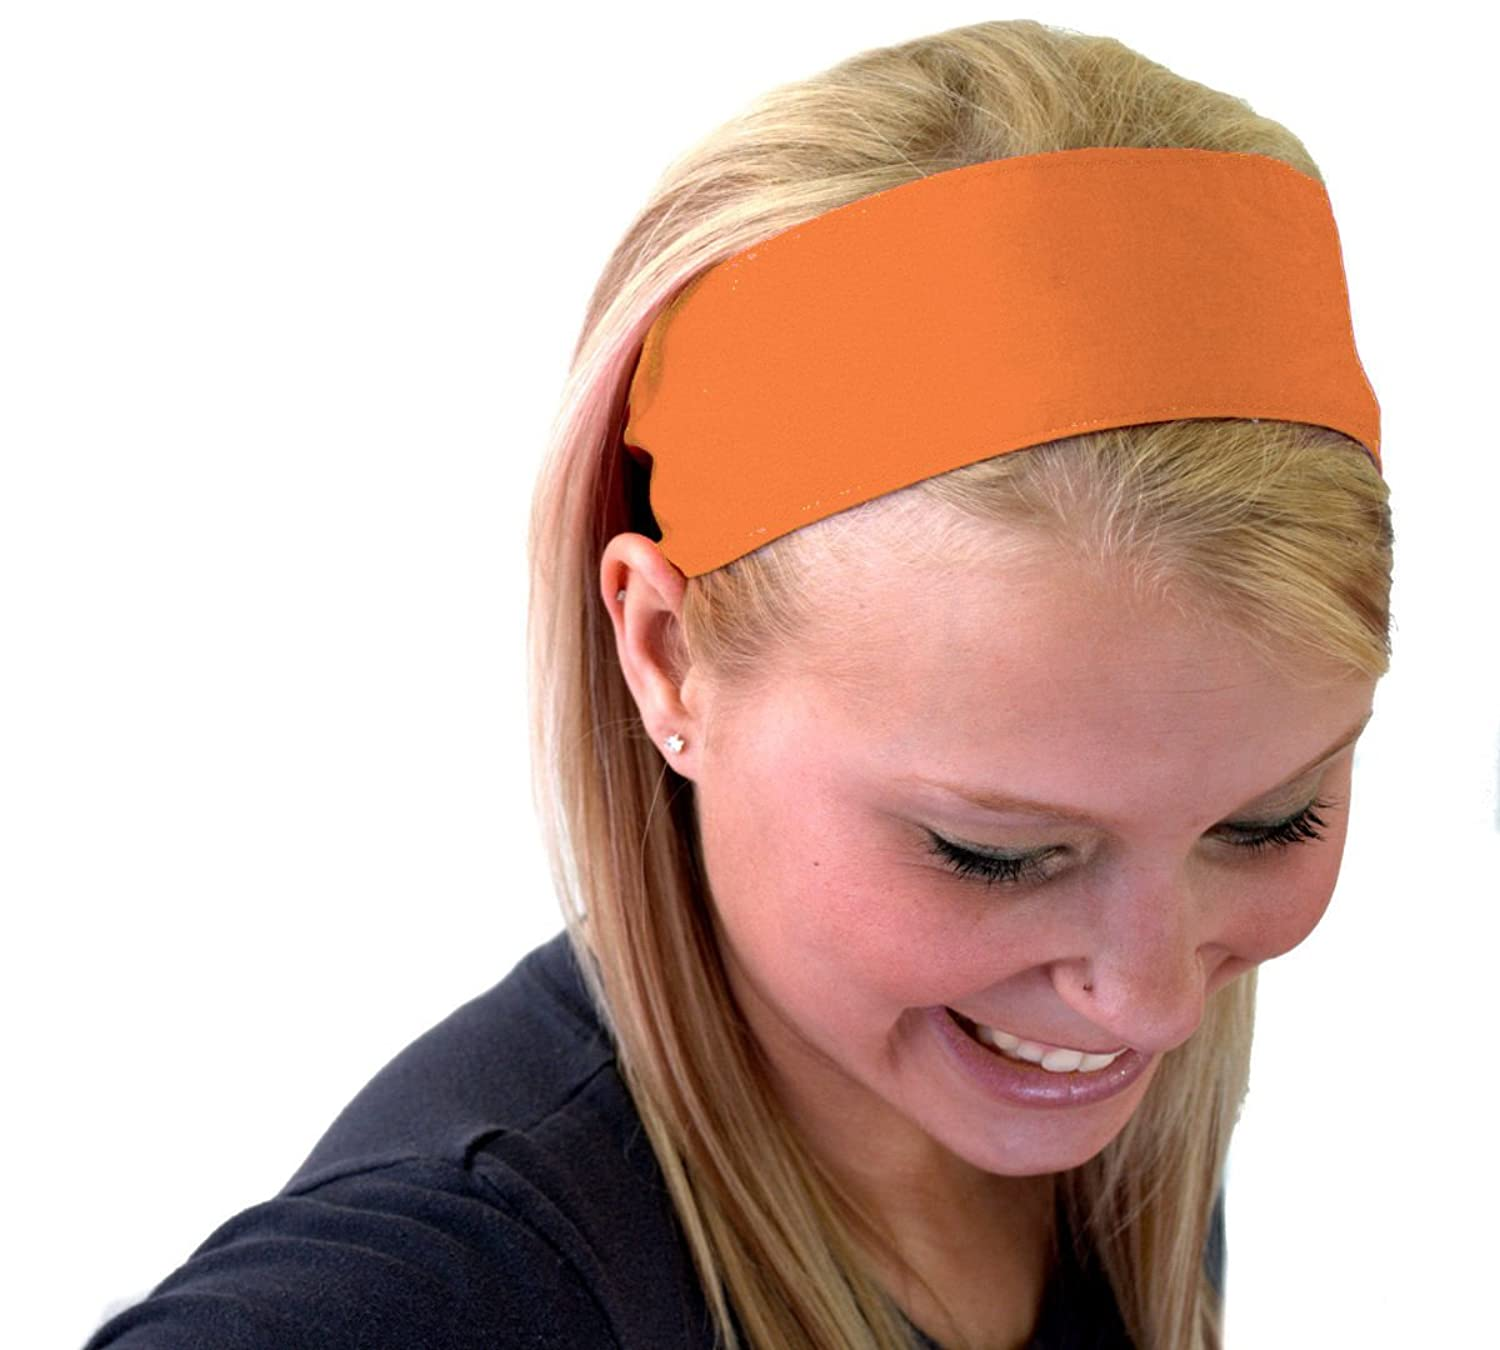 Bargain Headbands, Toasted Orange, Perfect Summer Inspiration Cute Soft Wide Headband